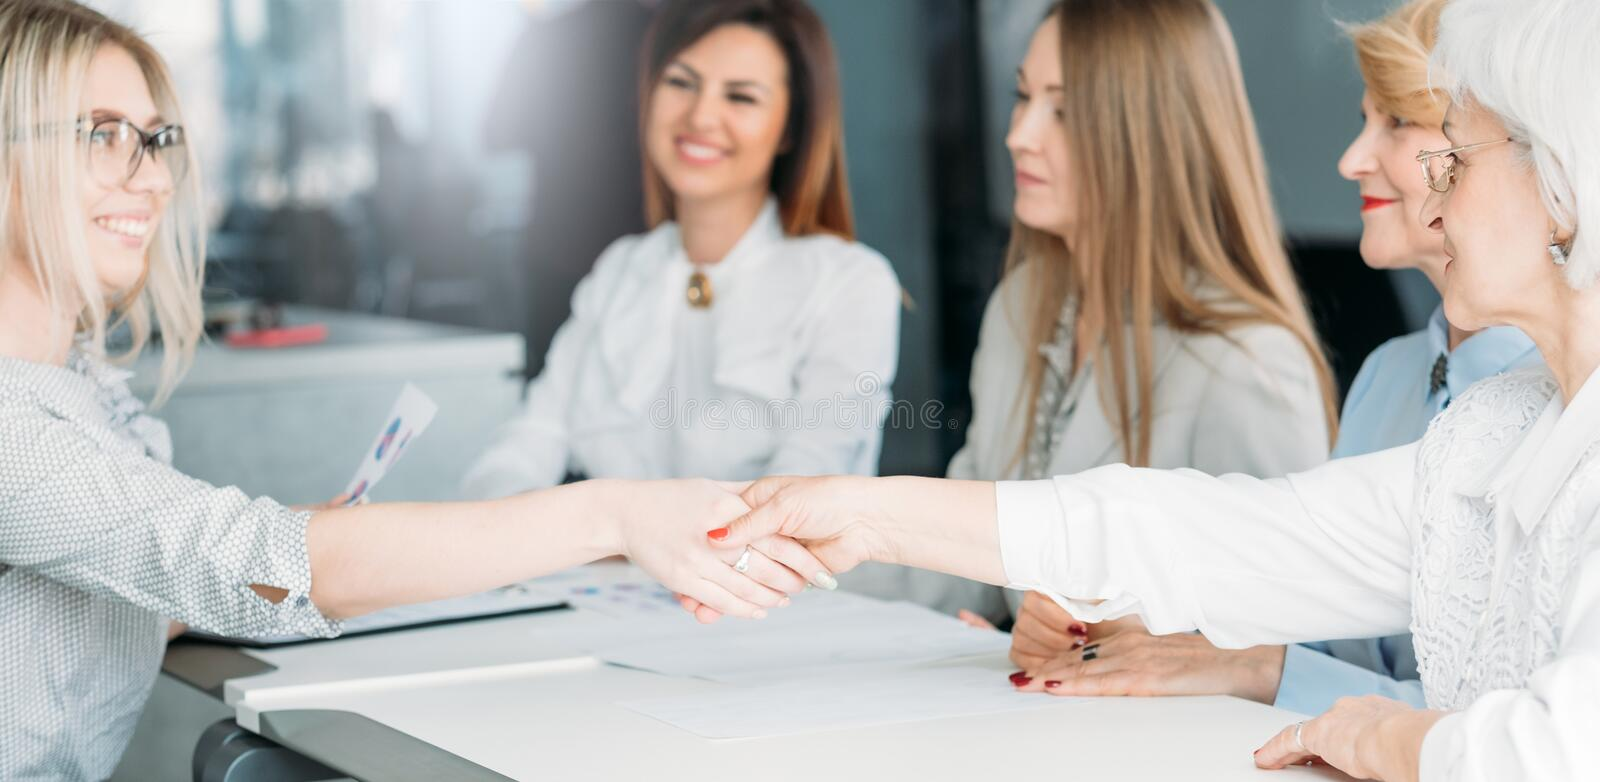 Powerful women business job interview recruitment. Job interview. Powerful women in business. Recruitment and employment. Young ambitious applicant getting hired royalty free stock photo